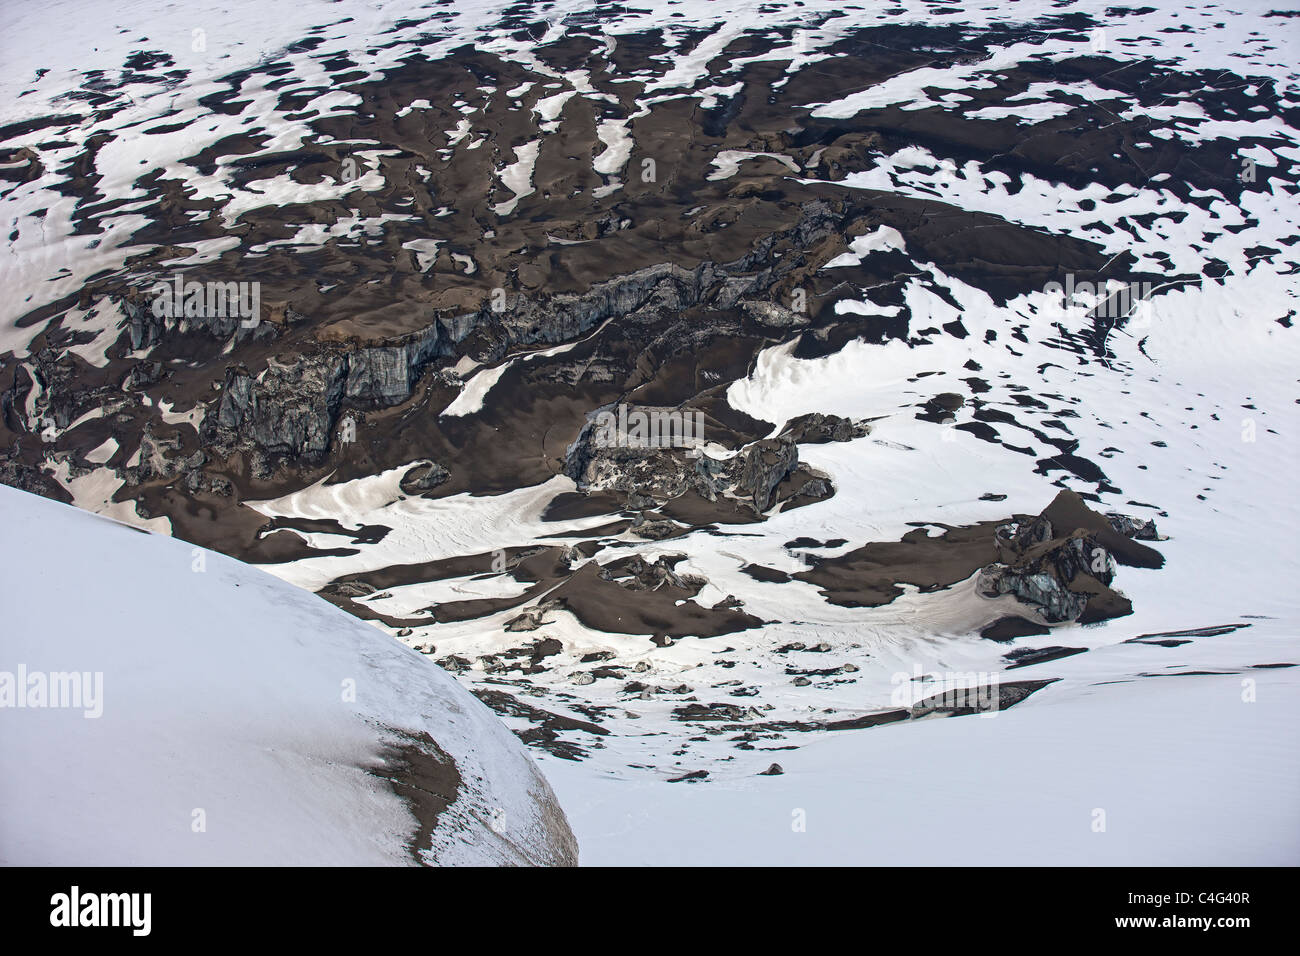 Ash fall and snow by crater, Grimsvotn volcanic eruption, Iceland - Stock Image